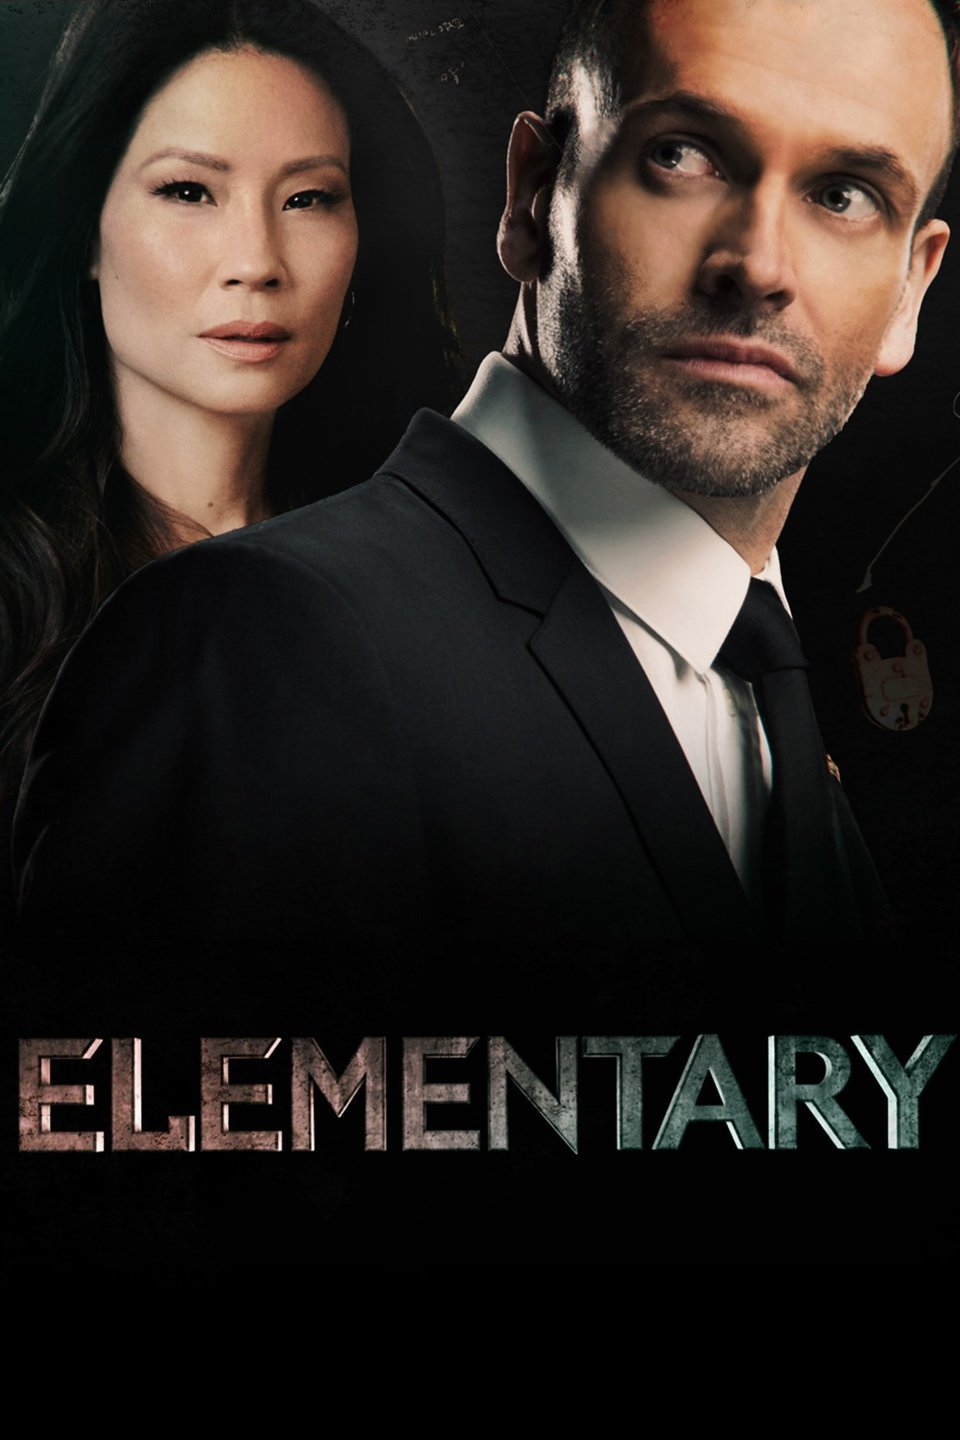 Elementary Season 6 Download HDTV (Episode 17 Added)